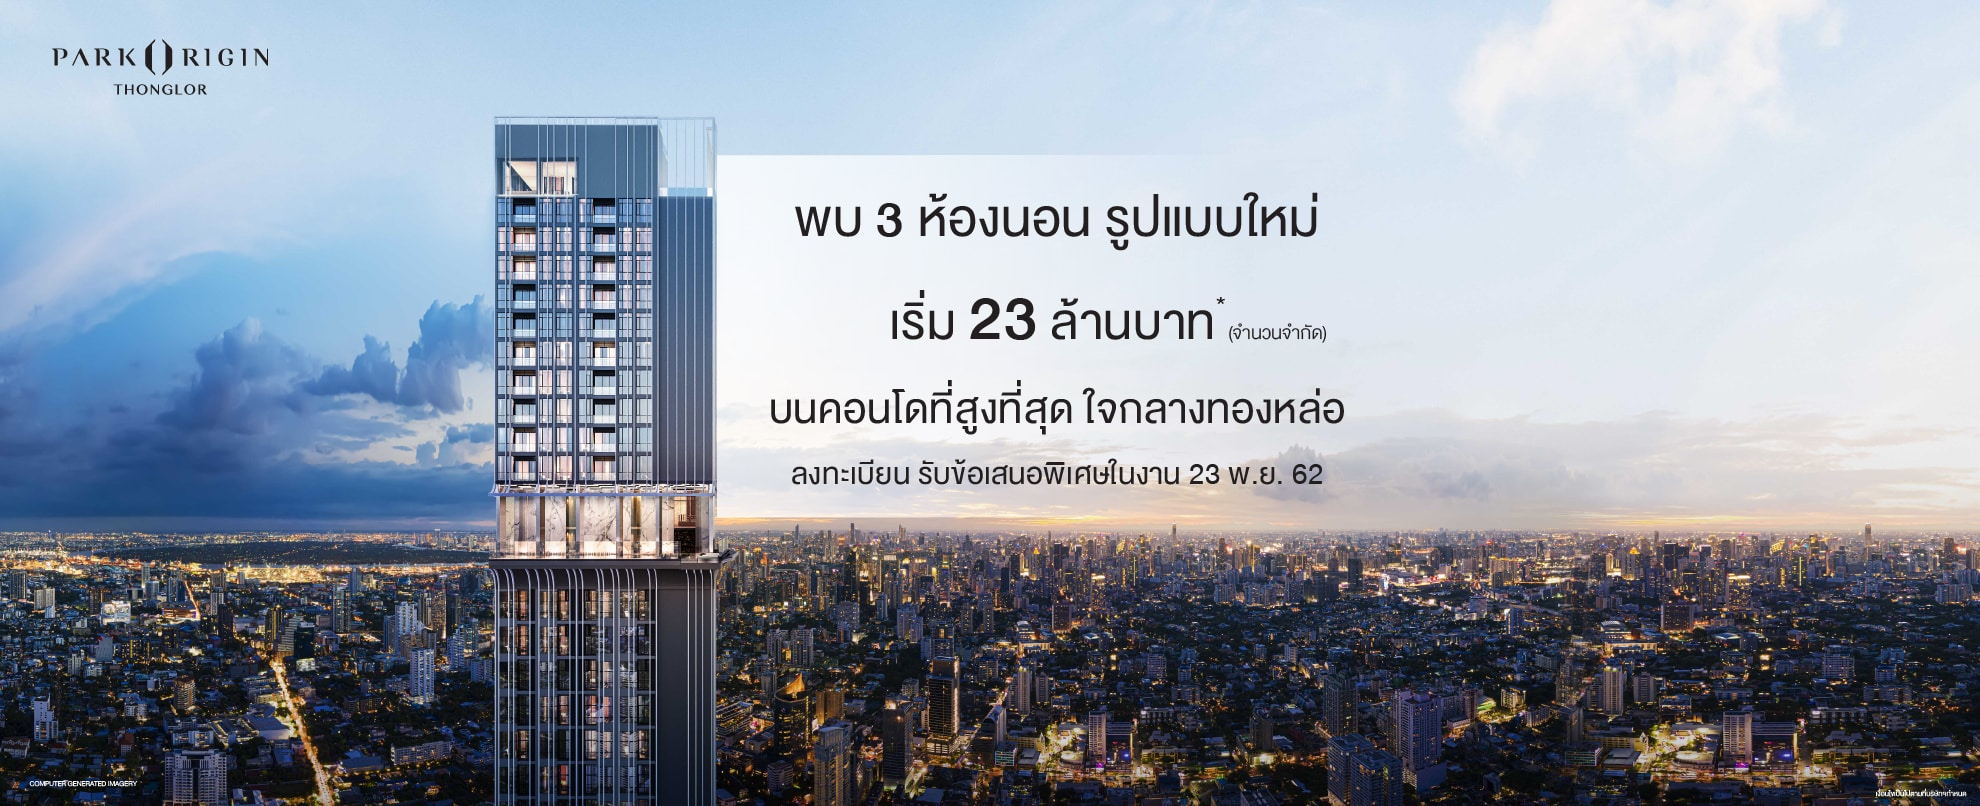 """THE NEW HEIGHT OF HIGH-END LIVING """"The New 3 bedroom"""" ฺBest Deal in Thonglor Start 23 MB. (LIMITED EDITION), Exclusive Open on Saturday, November 23rd, 2019 Visit us Thonglor10 RSVP : Tekhun(Ashi) Tel 063 612 9999"""